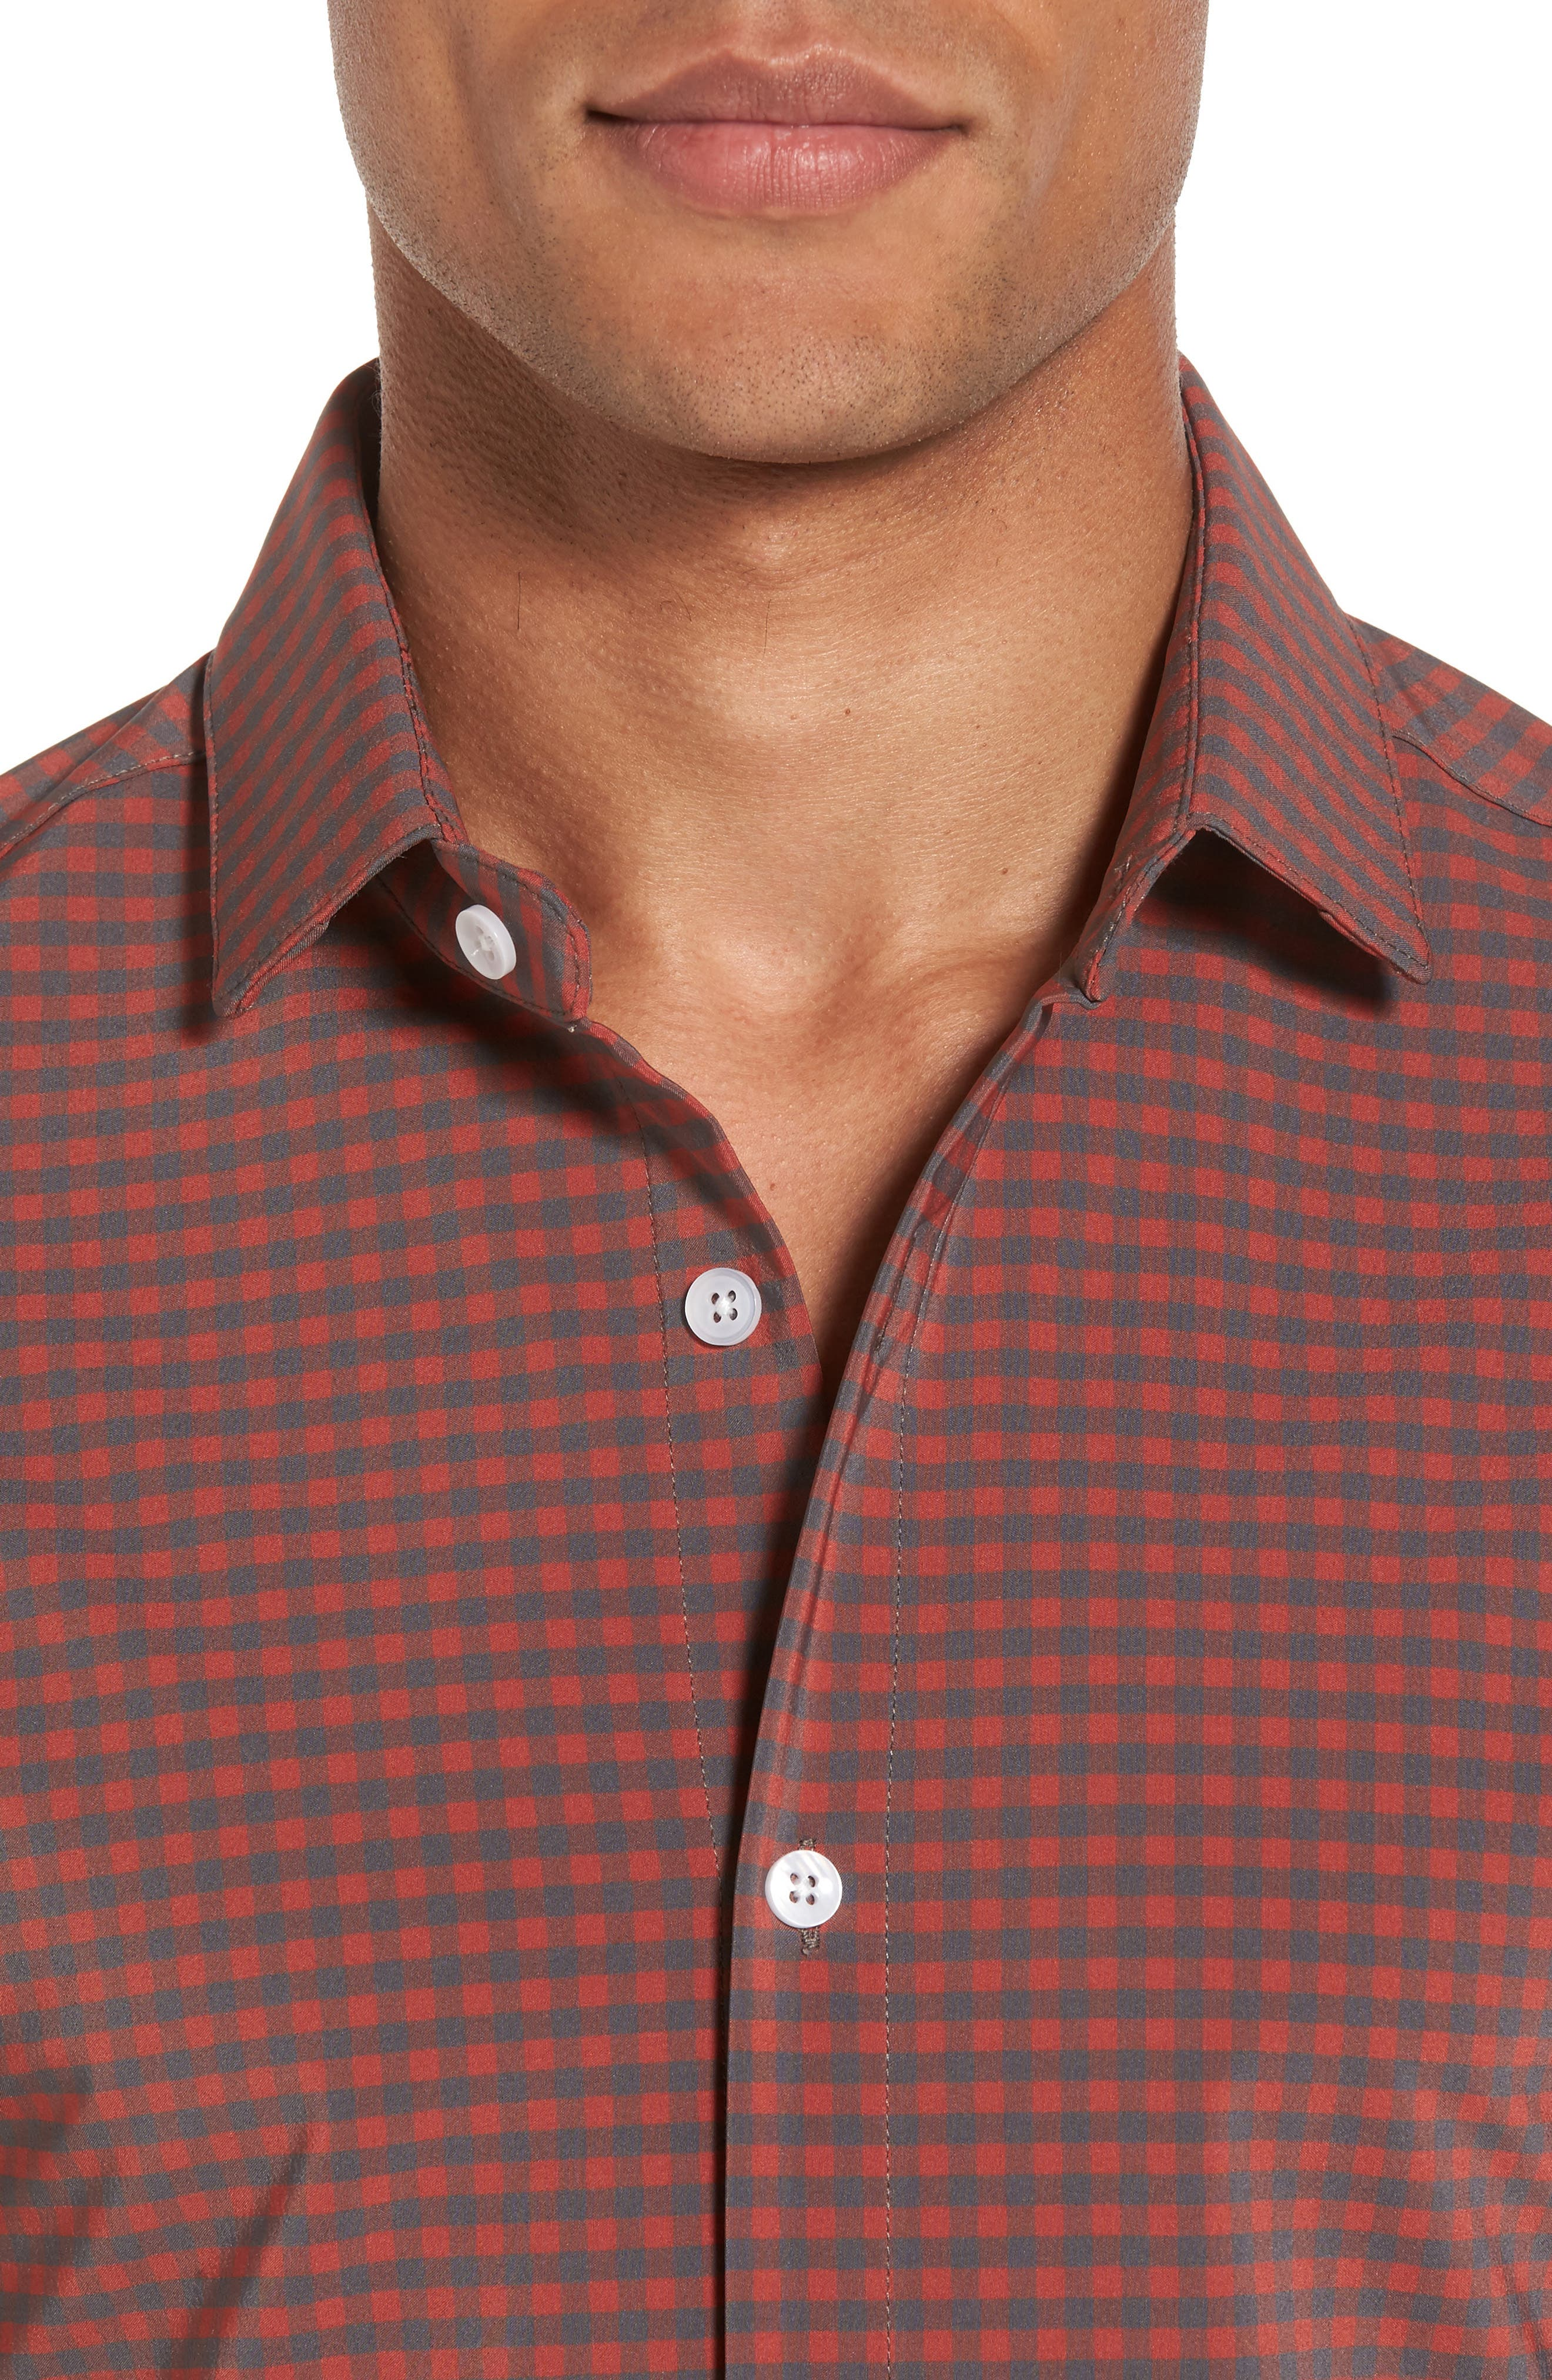 Douglas Grey & Chili Check Sport Shirt,                             Alternate thumbnail 4, color,                             RED